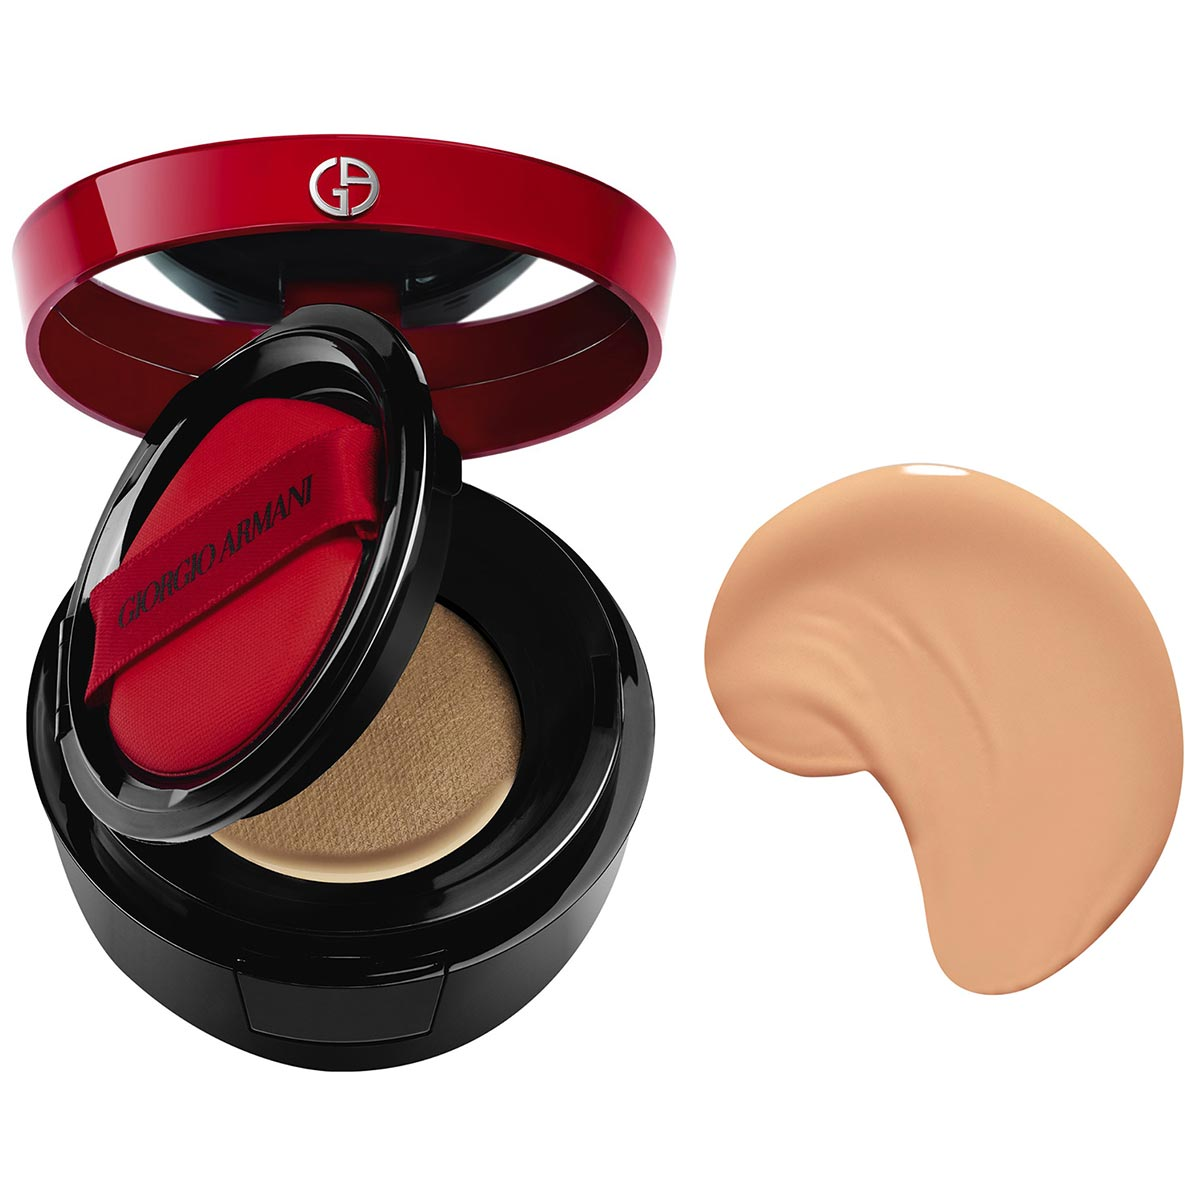 Giorgio Armani Beauty Armani To Go Cushion